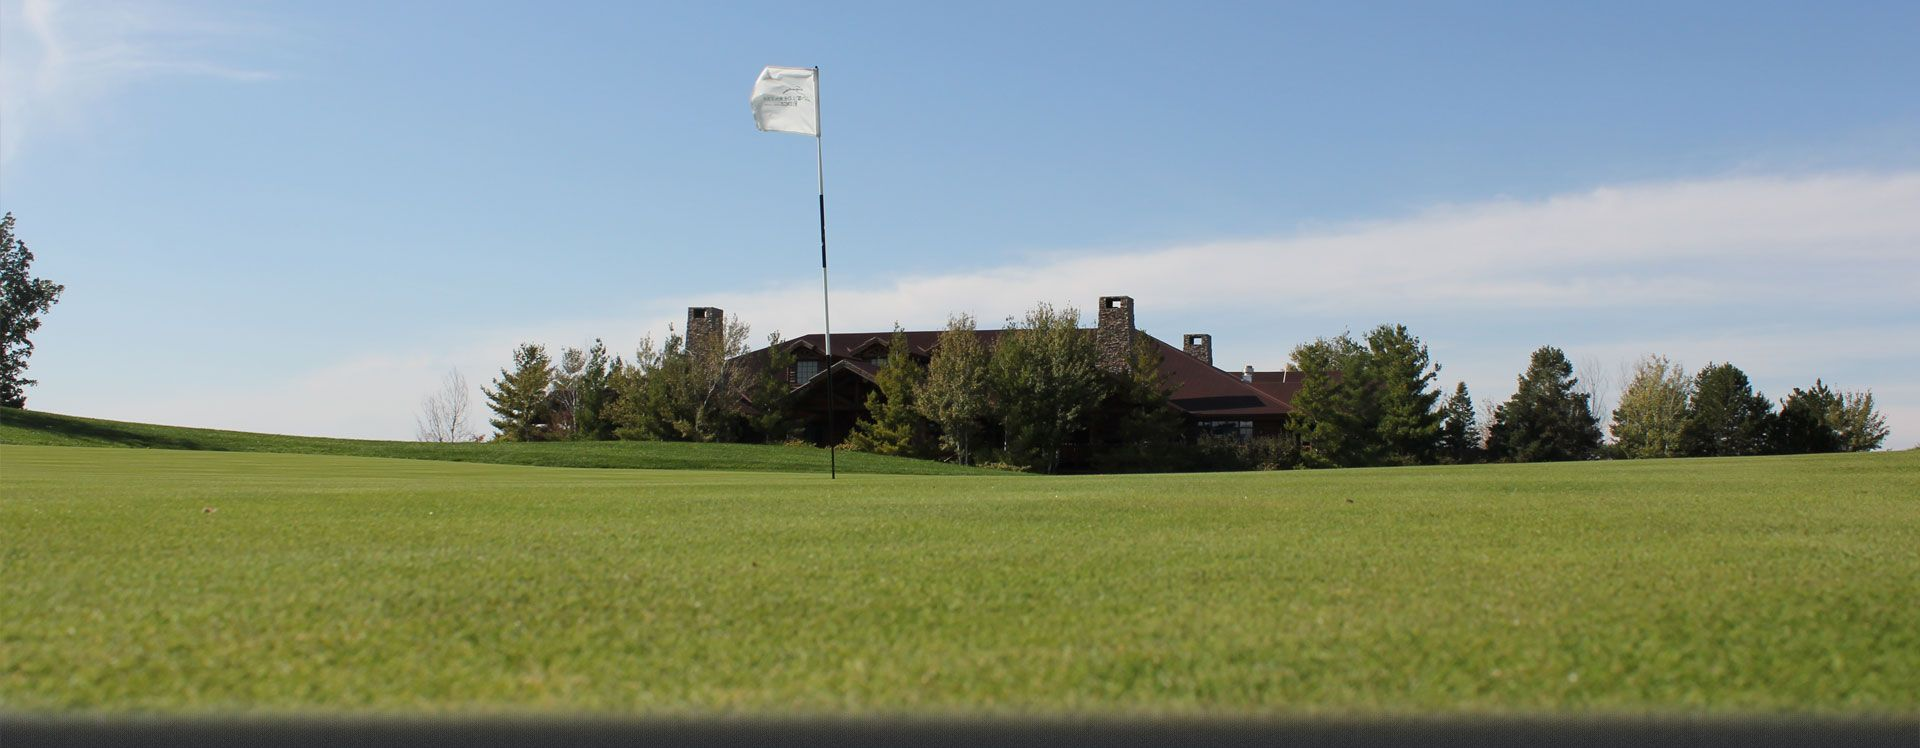 Wilderness Ridge Golf Course and The Lodge at Wilderness